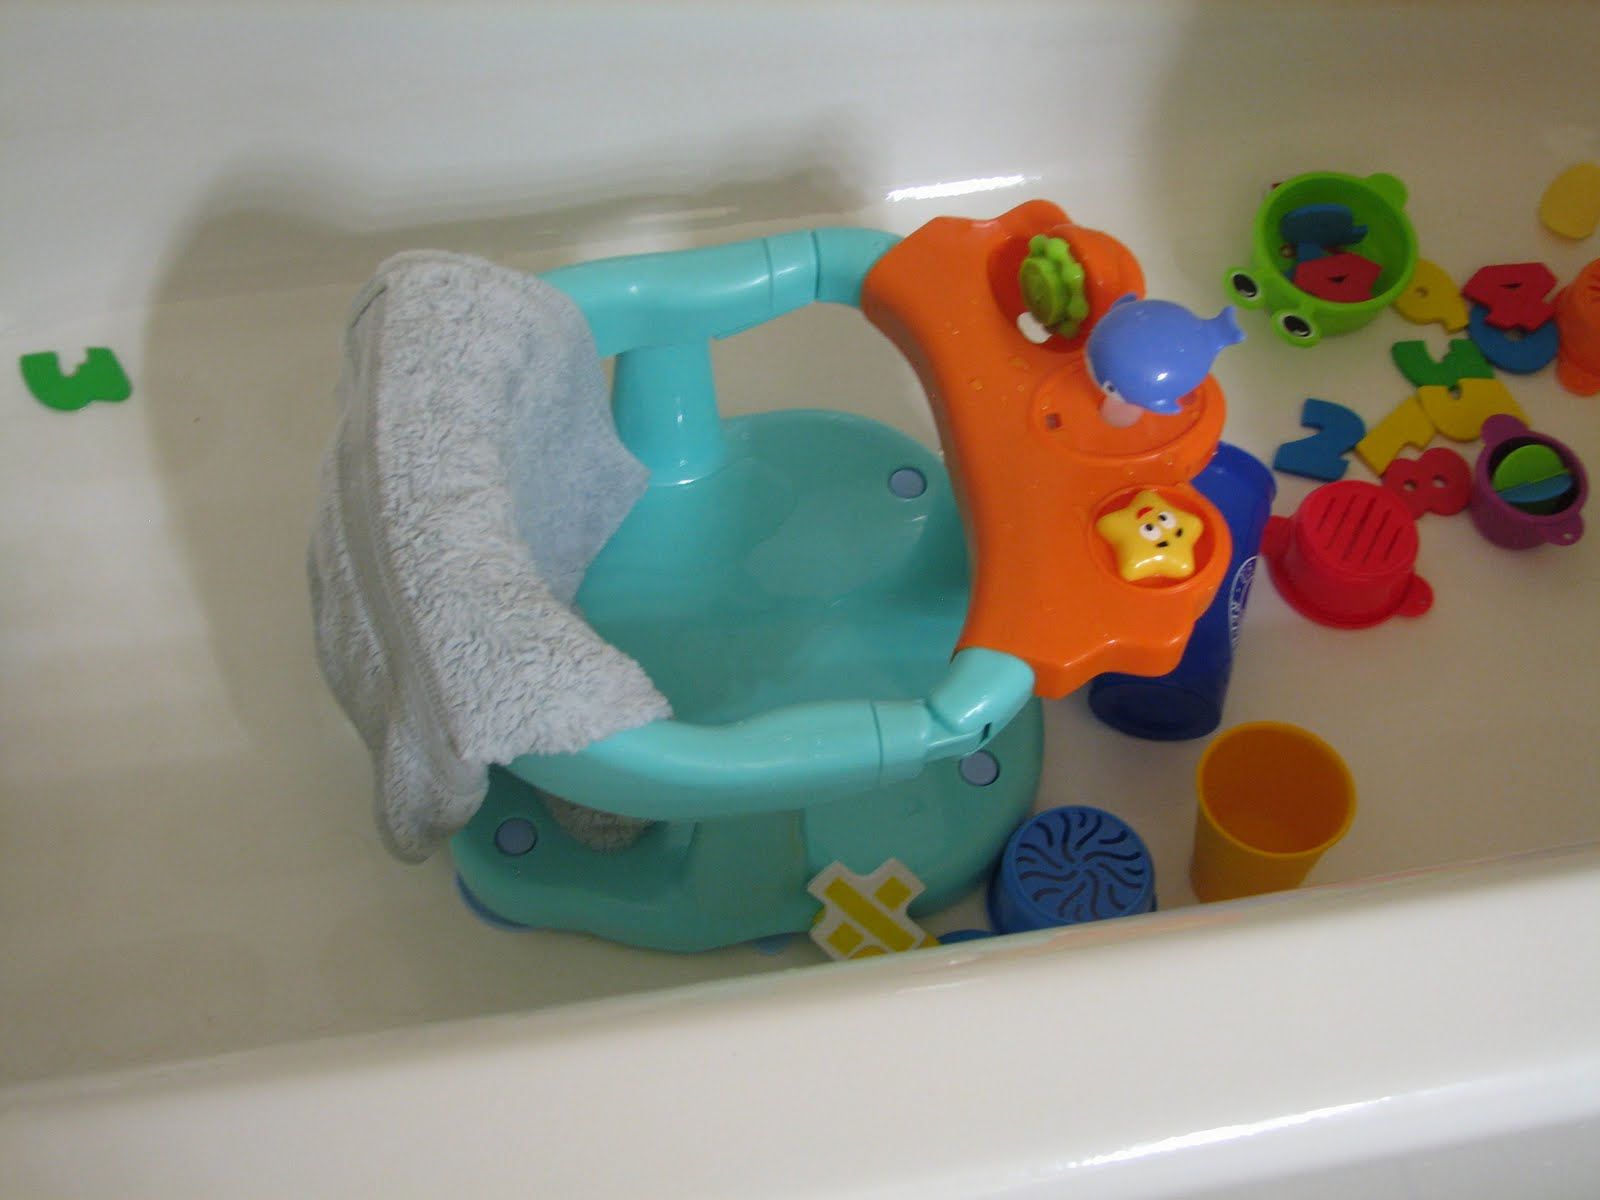 Baby Bath Seat Vs Bathtub Baby Bath Seat Ebay Baby Bath Seat Bathing Supports Ebay 17 Best